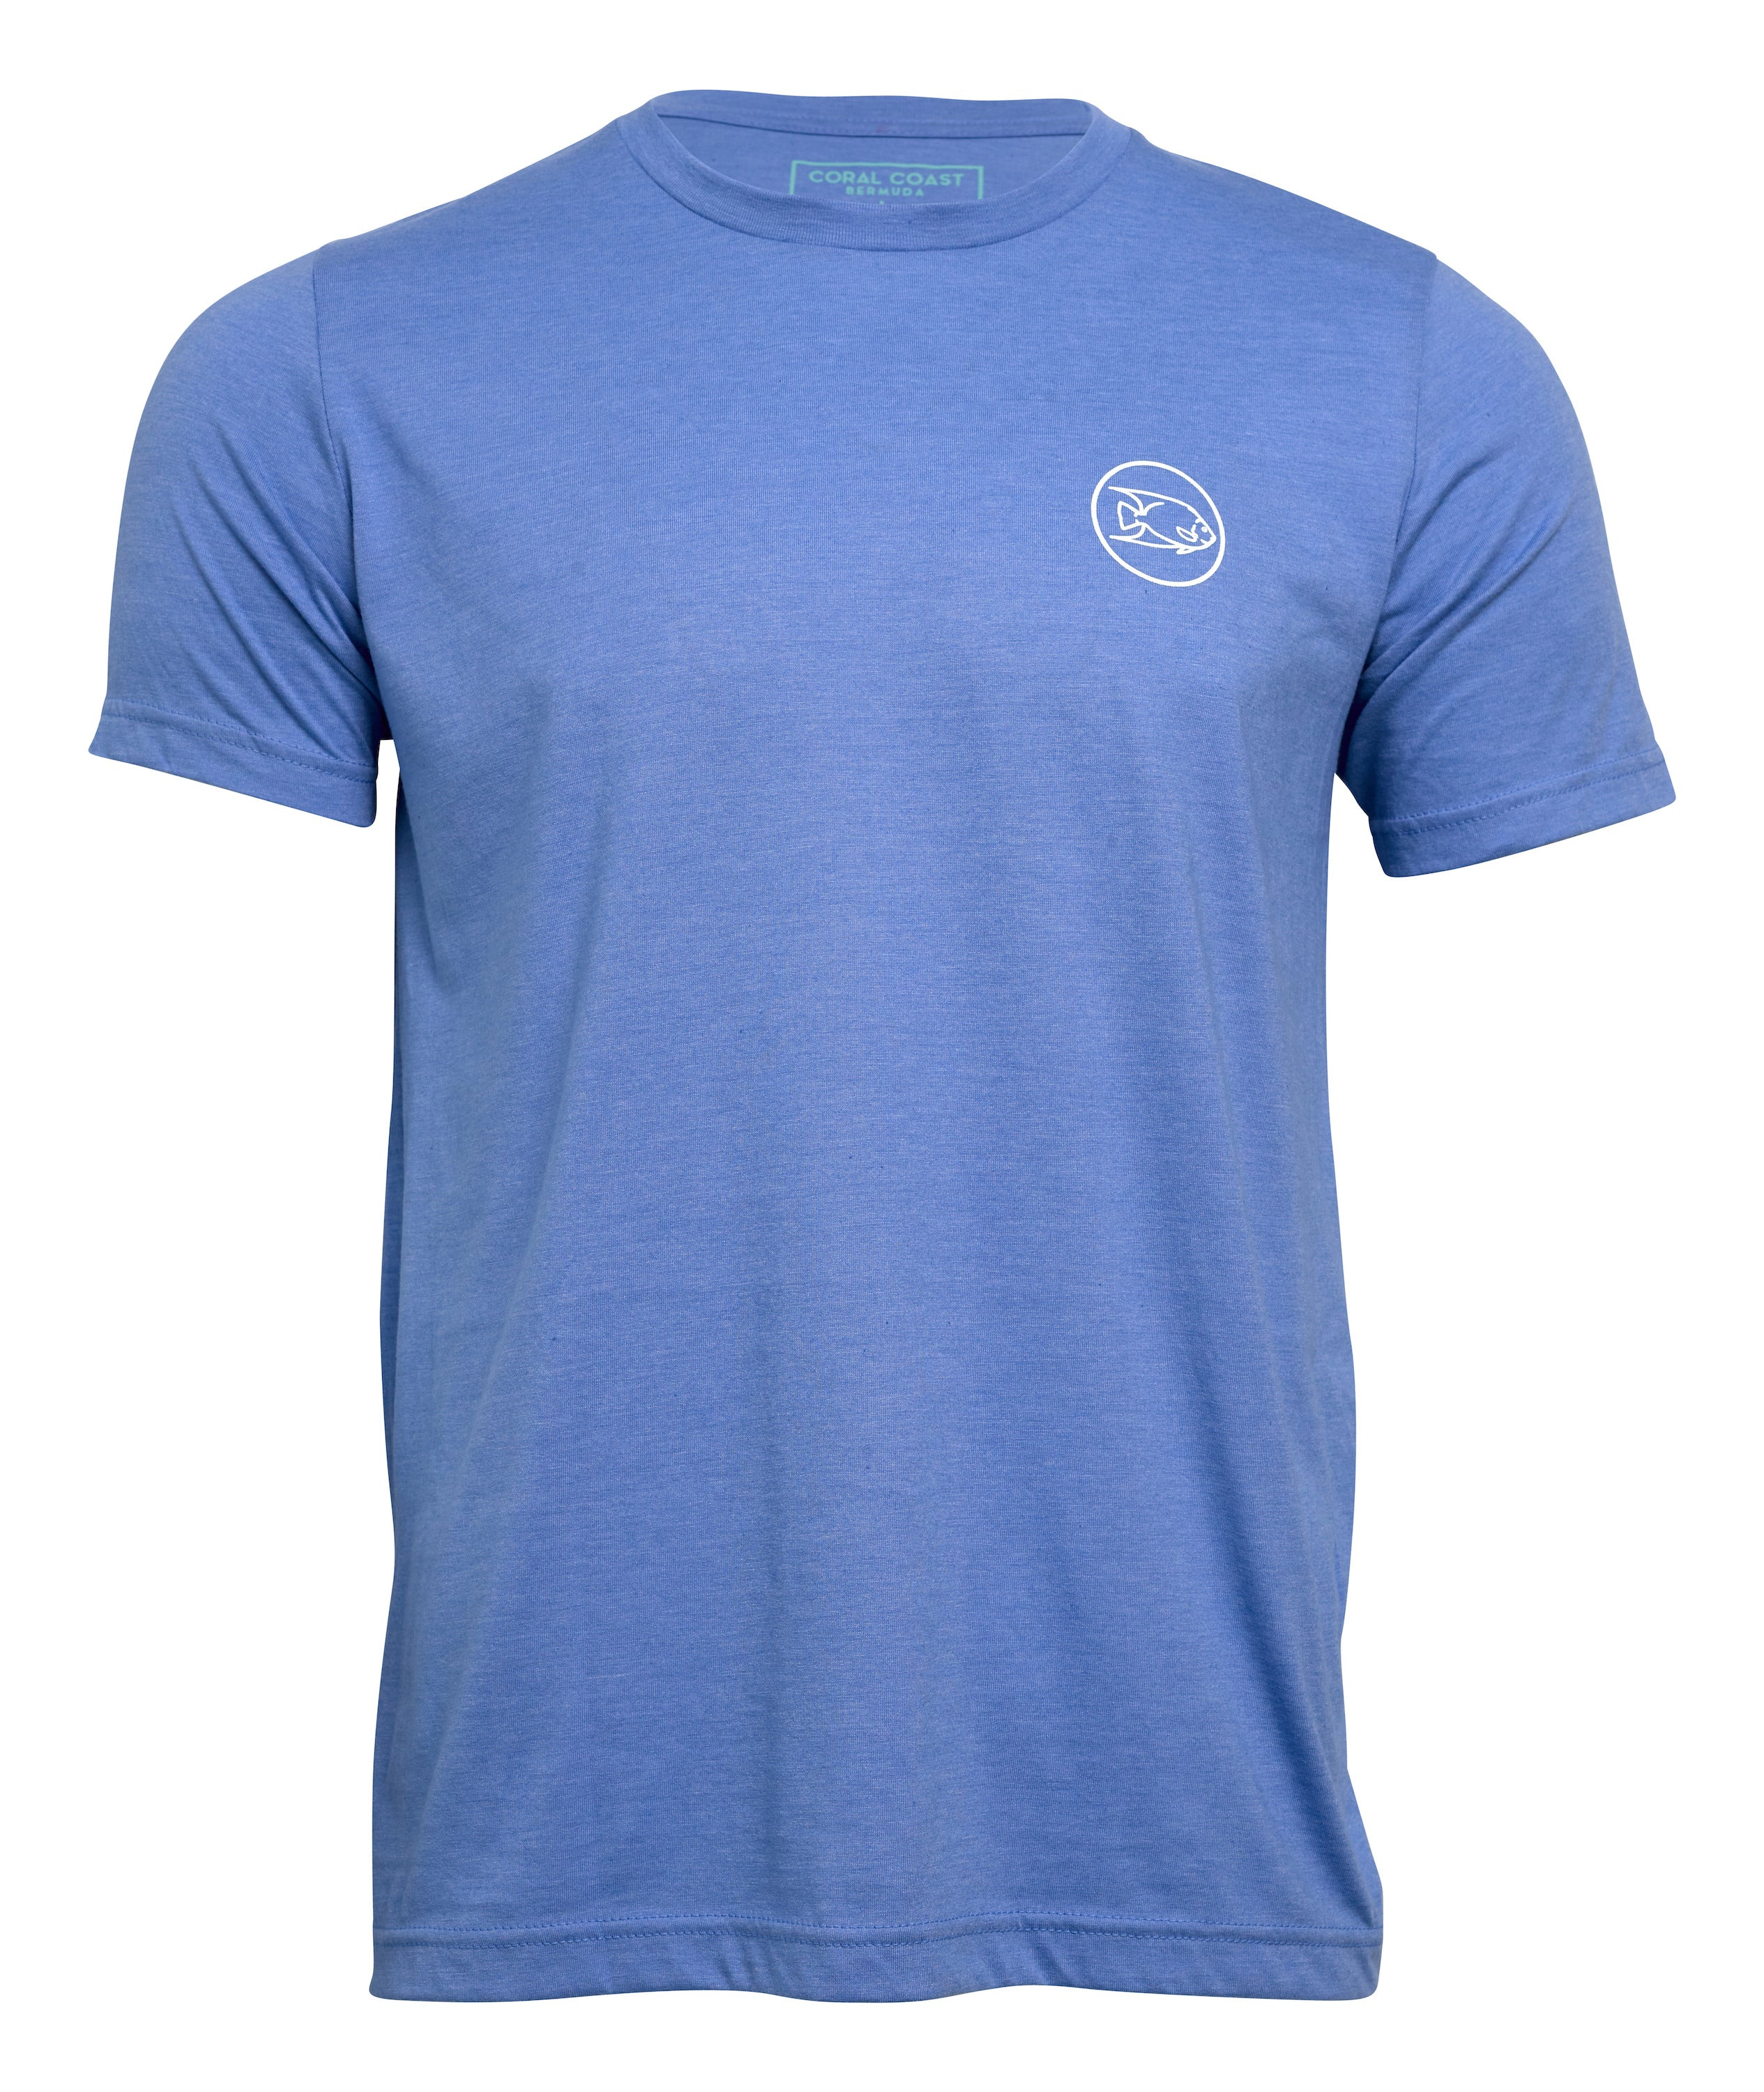 ROYAL CC LOGO T-SHIRT